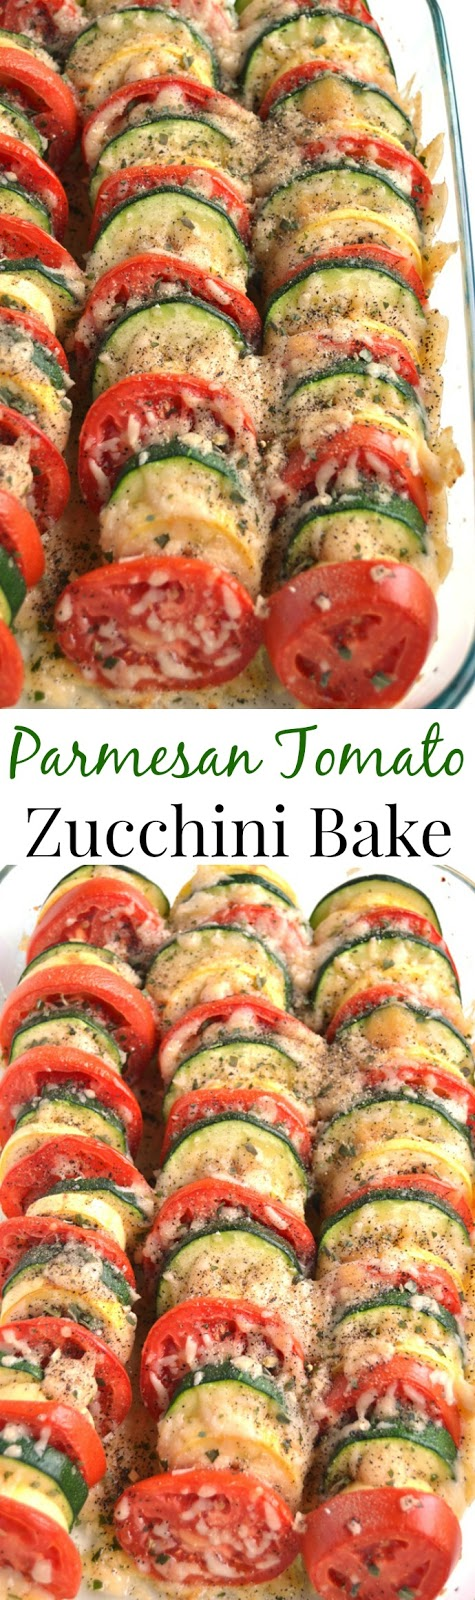 Parmesan Tomato Zucchini Bake is a simple recipe with layered fresh tomatoes, zucchini and summer squash topped with garlic, onions and parmesan cheese! www.nutritionistreviews.com #zucchini #tomato #tomatoes #summer #sidedish #vegetable #vegetables #cleaneating #healthy #parmesan